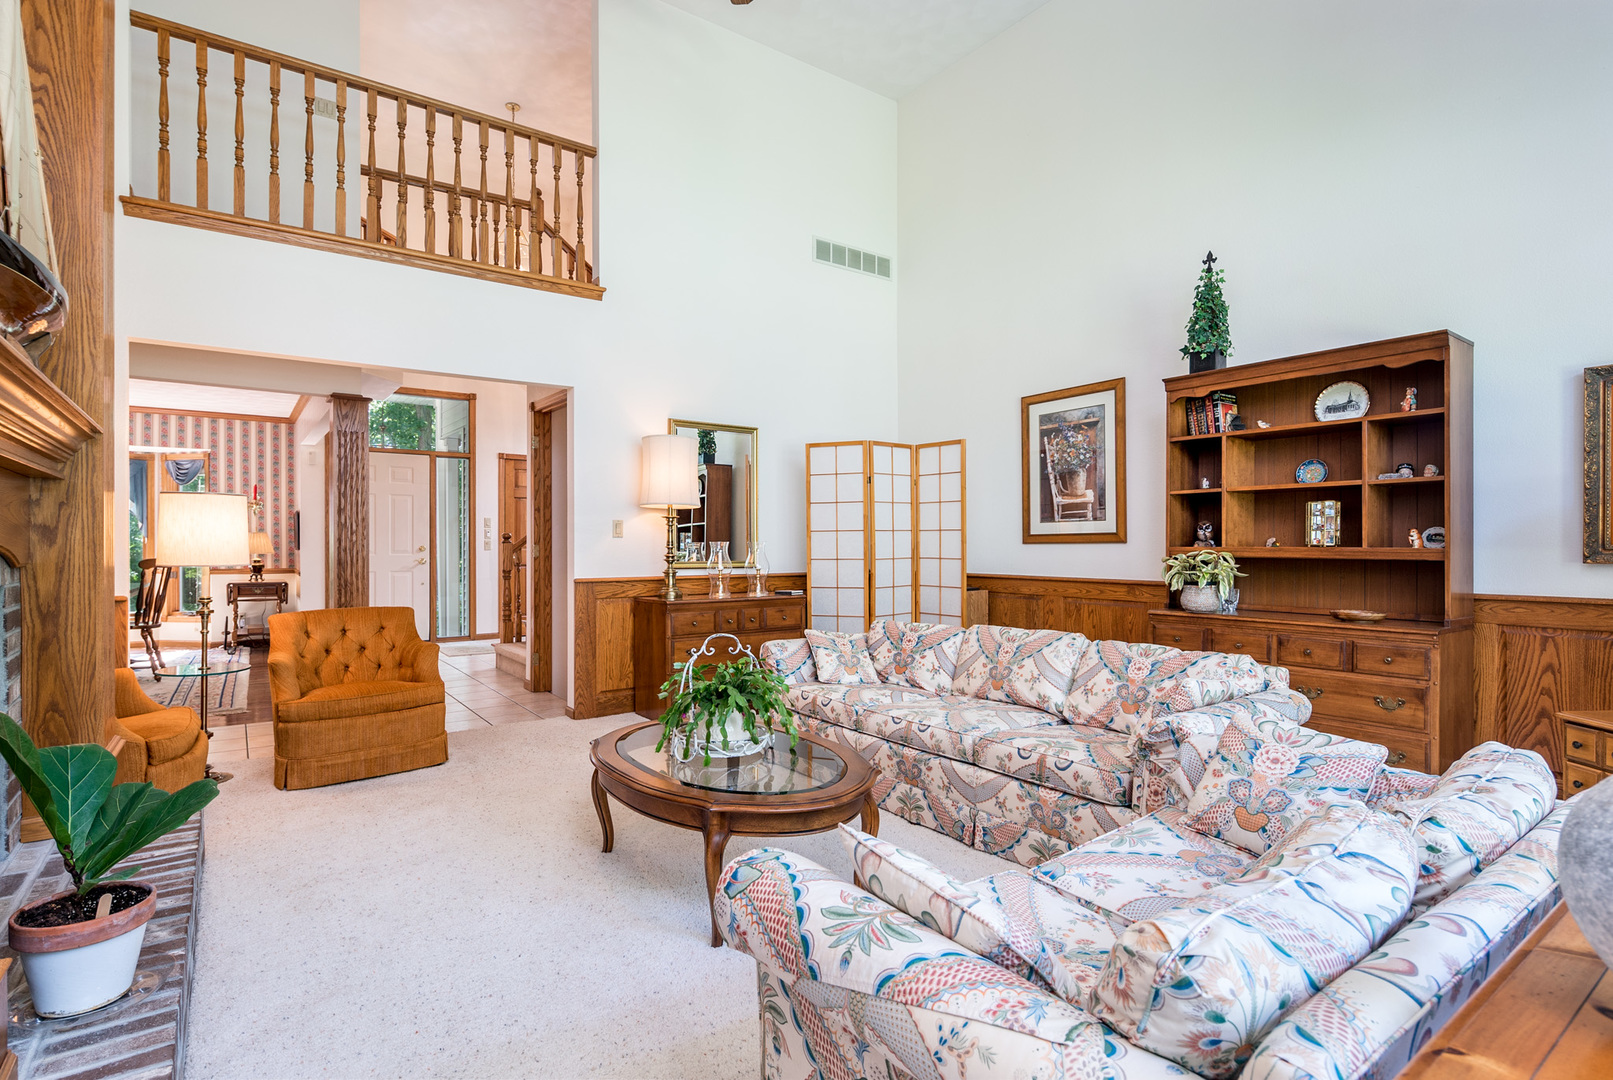 south beloit big and beautiful singles Single-family homes for sale in south beloit, il on oodle classifieds join millions of people using oodle to find local real estate listings, homes for sales, condos for sale and.